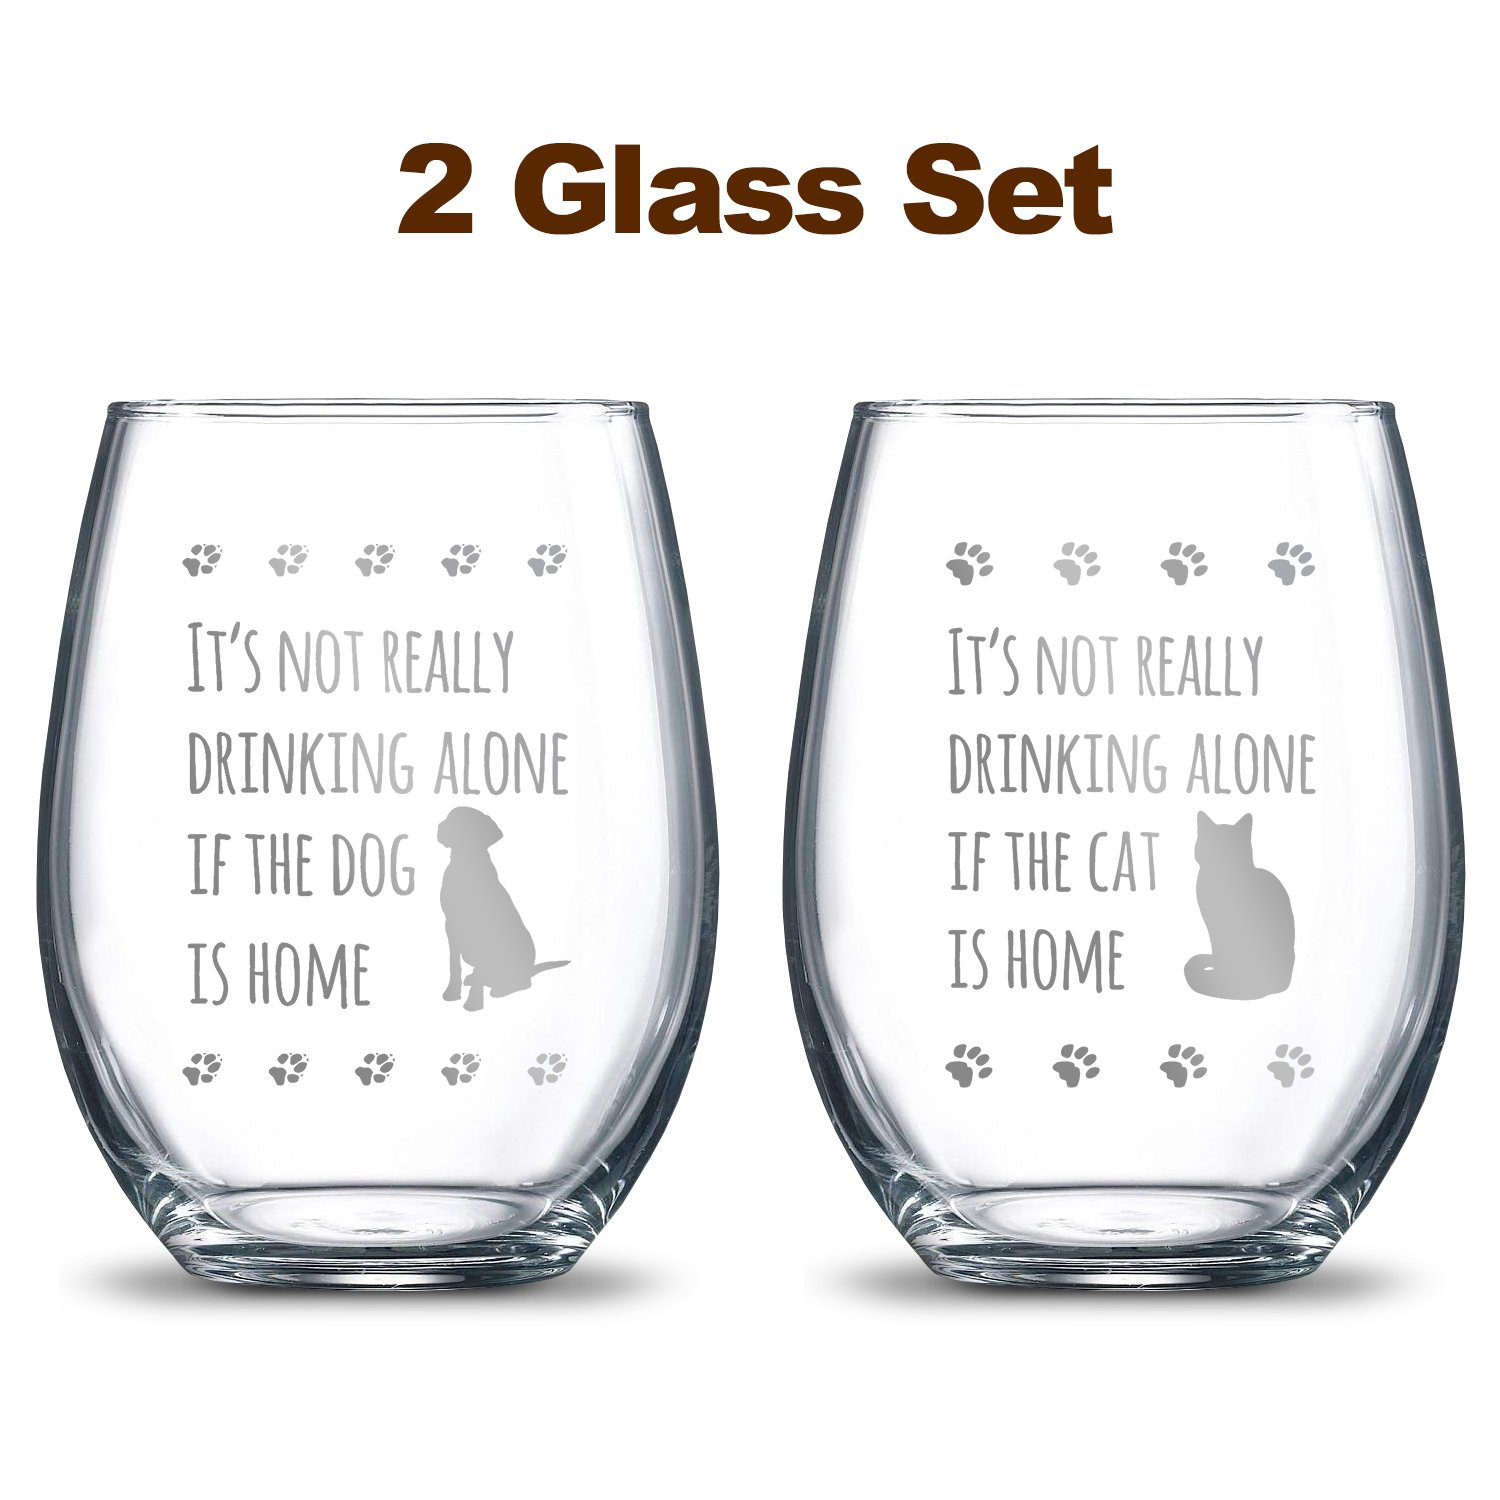 It's Not Really Drinking Alone if the Dog is Home + It's Not Really Drinking Alone if the Cat is Home 21oz. Etched Stemless Wine Glasses | 2 Glass Set Packed in an Stylish Gift Box |Pet Lovers Gift